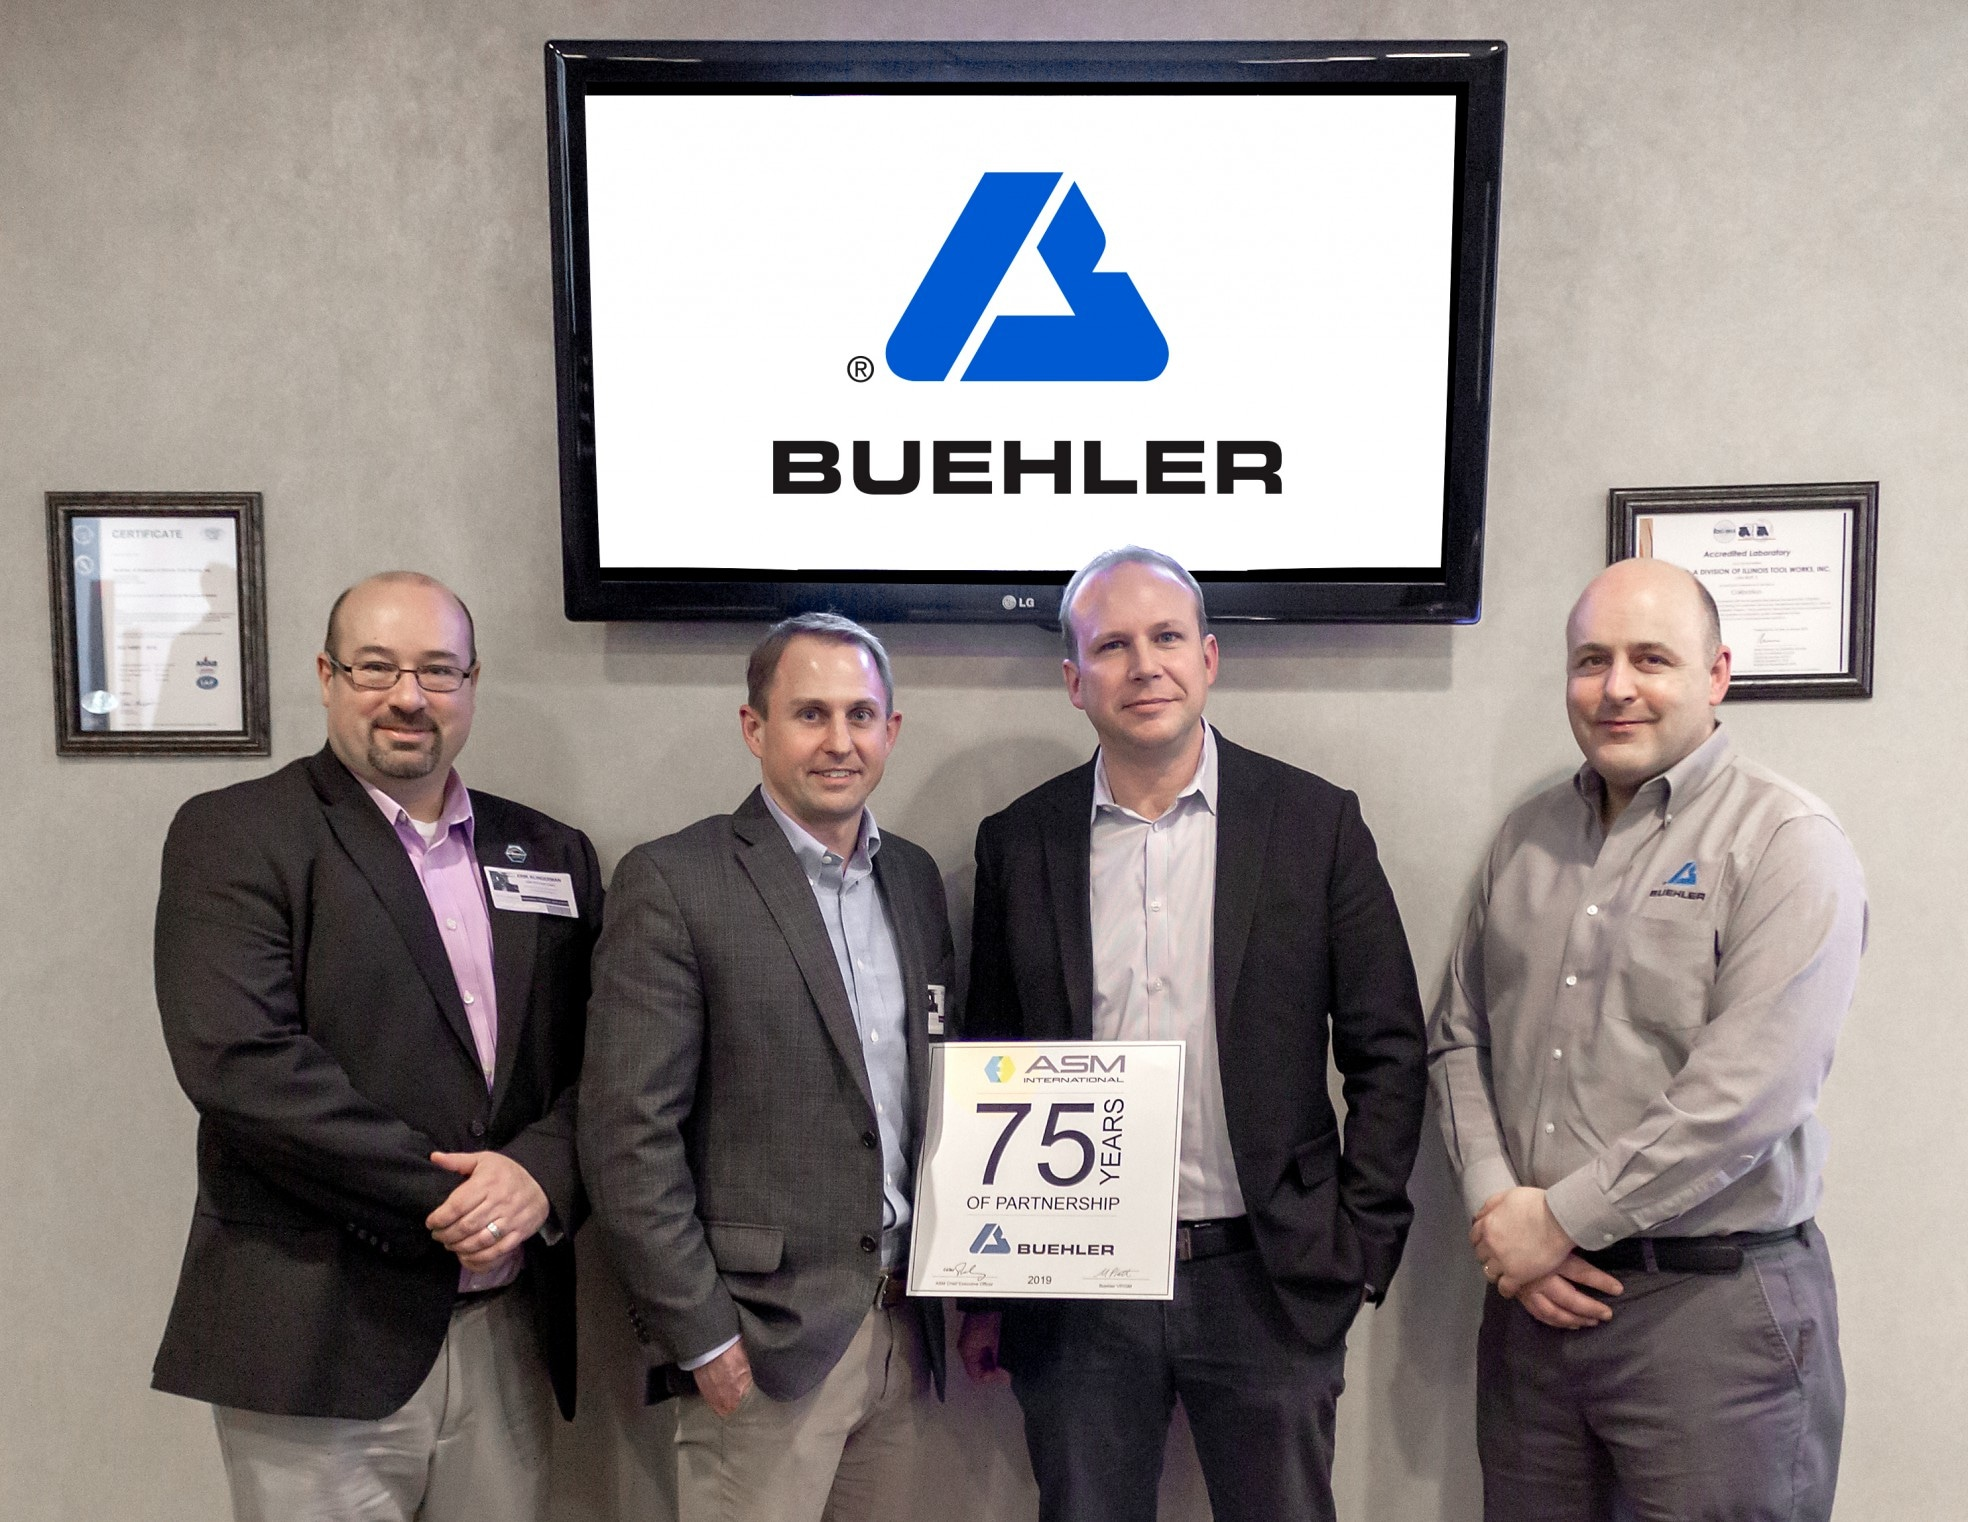 Buehler Celebrates 75 Years Partnership with ASM International Leading the Way for Industry 4.O with Innovations and Training in Metallography